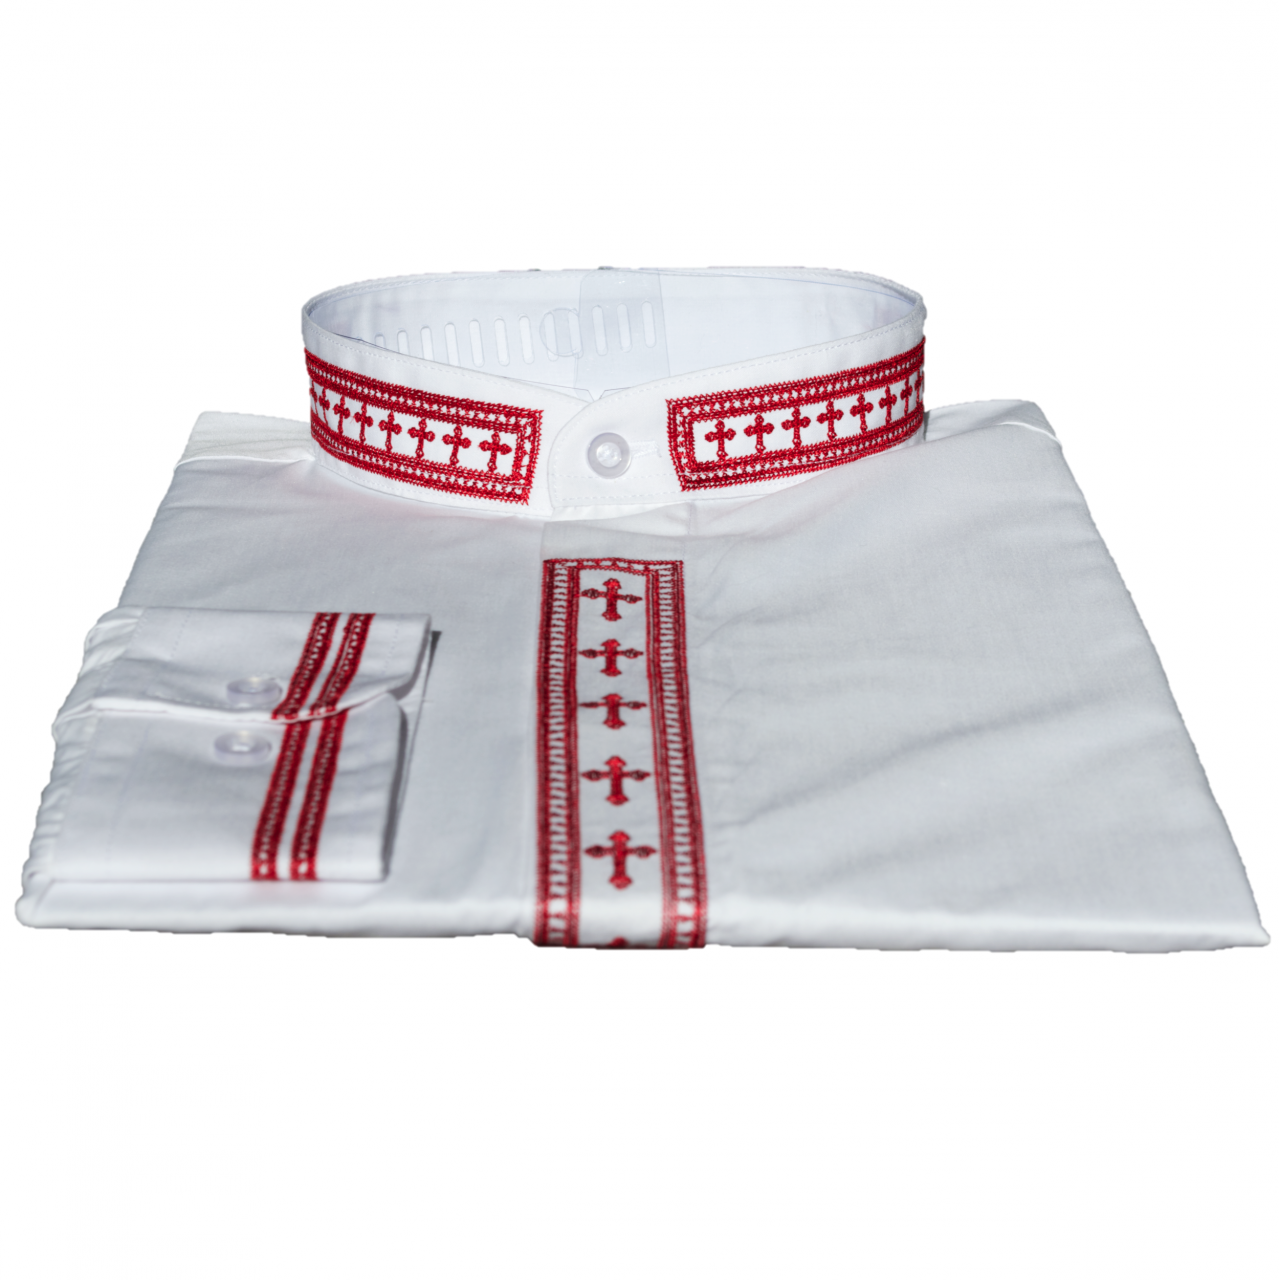 311. Men's Long-Sleeve Clergy Shirt With Fine Embroidery - White/Red